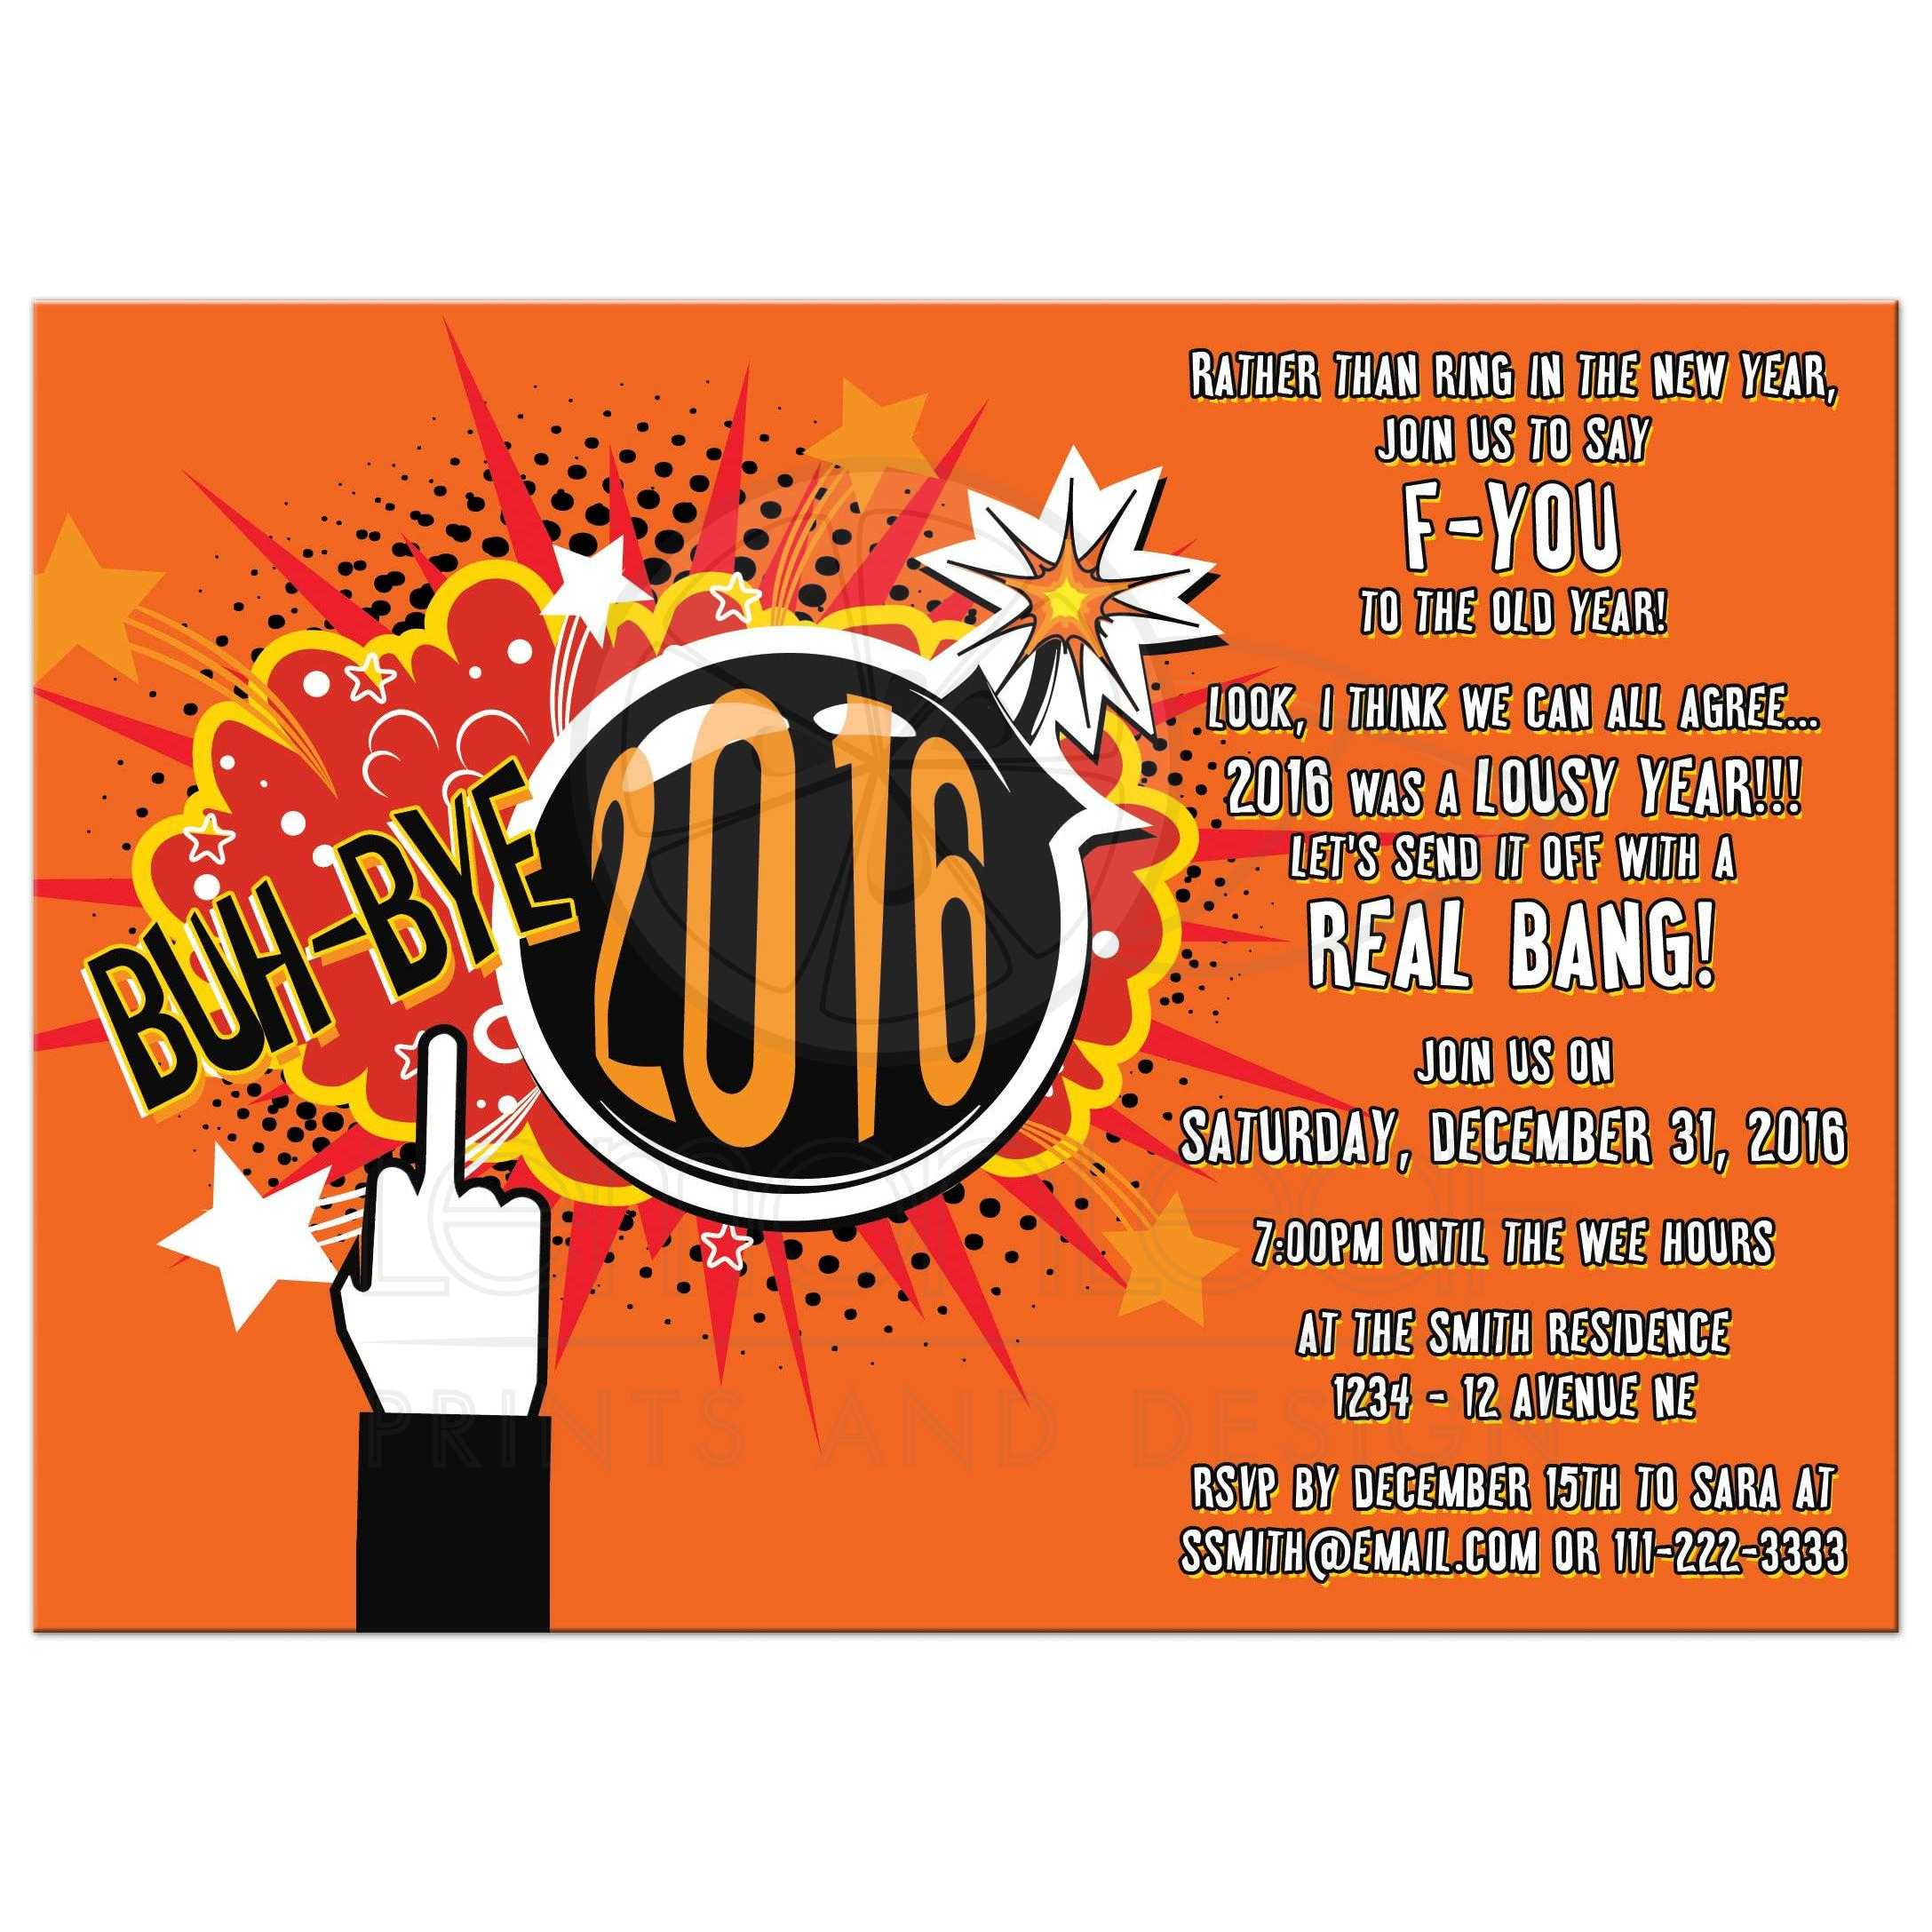 Novelty Blow Up 2016 Rude New Years Eve Party Invitation